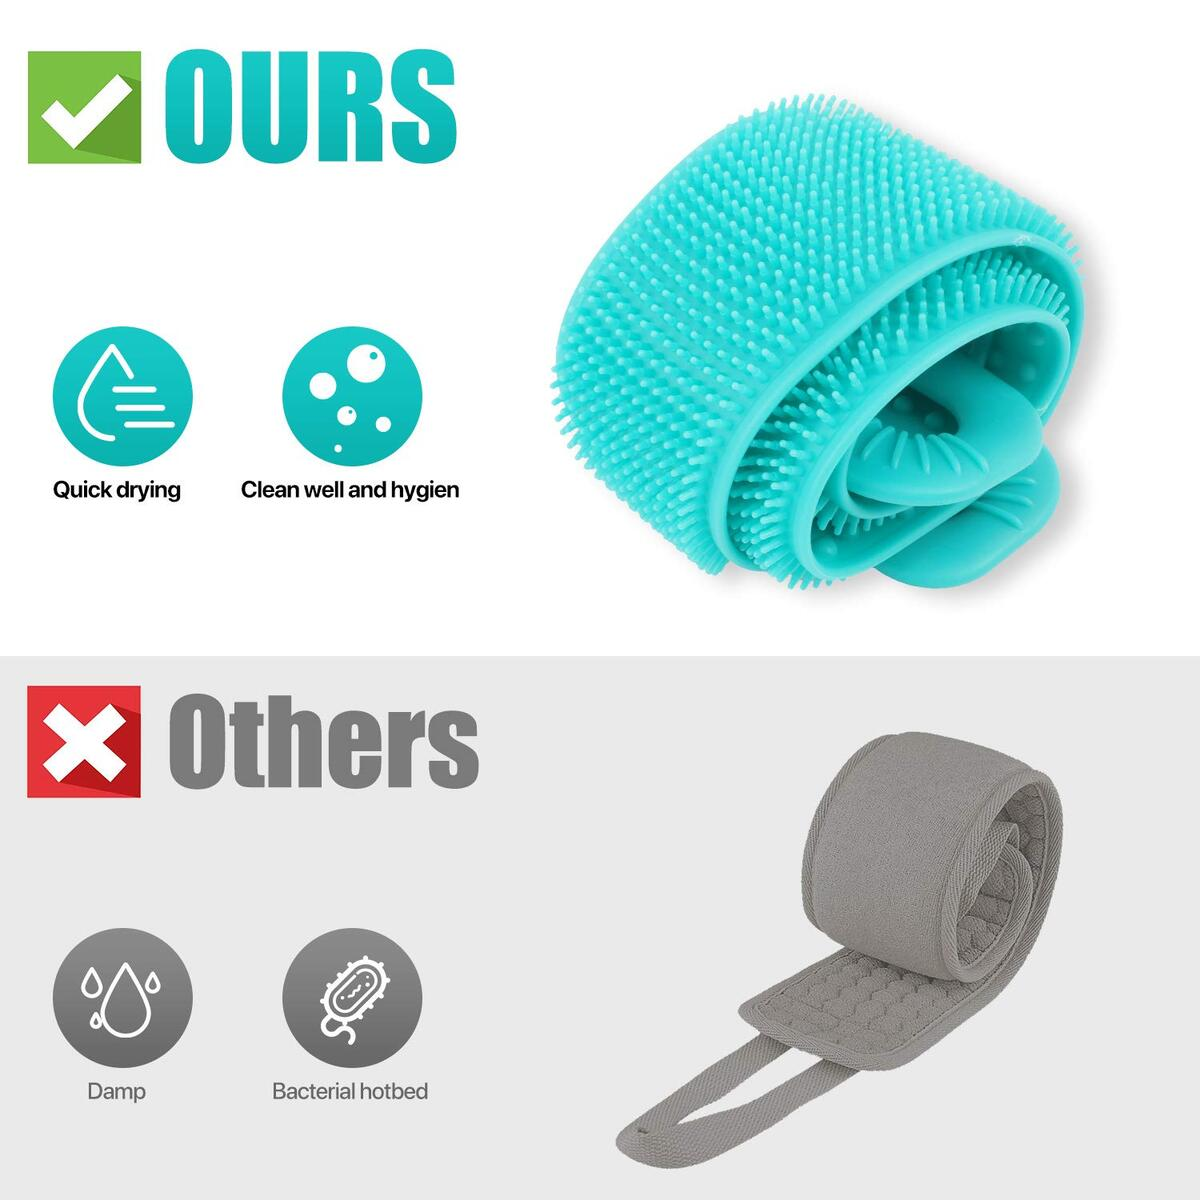 "Silicone Back Scrubber Bath Body Brush for Shower, Lengthen Dry Handle Exfoliator Gentle Shower Scrubber for Washer, Deep Clean Silicone Massage Skin Scrub Pad 30""(Green)"